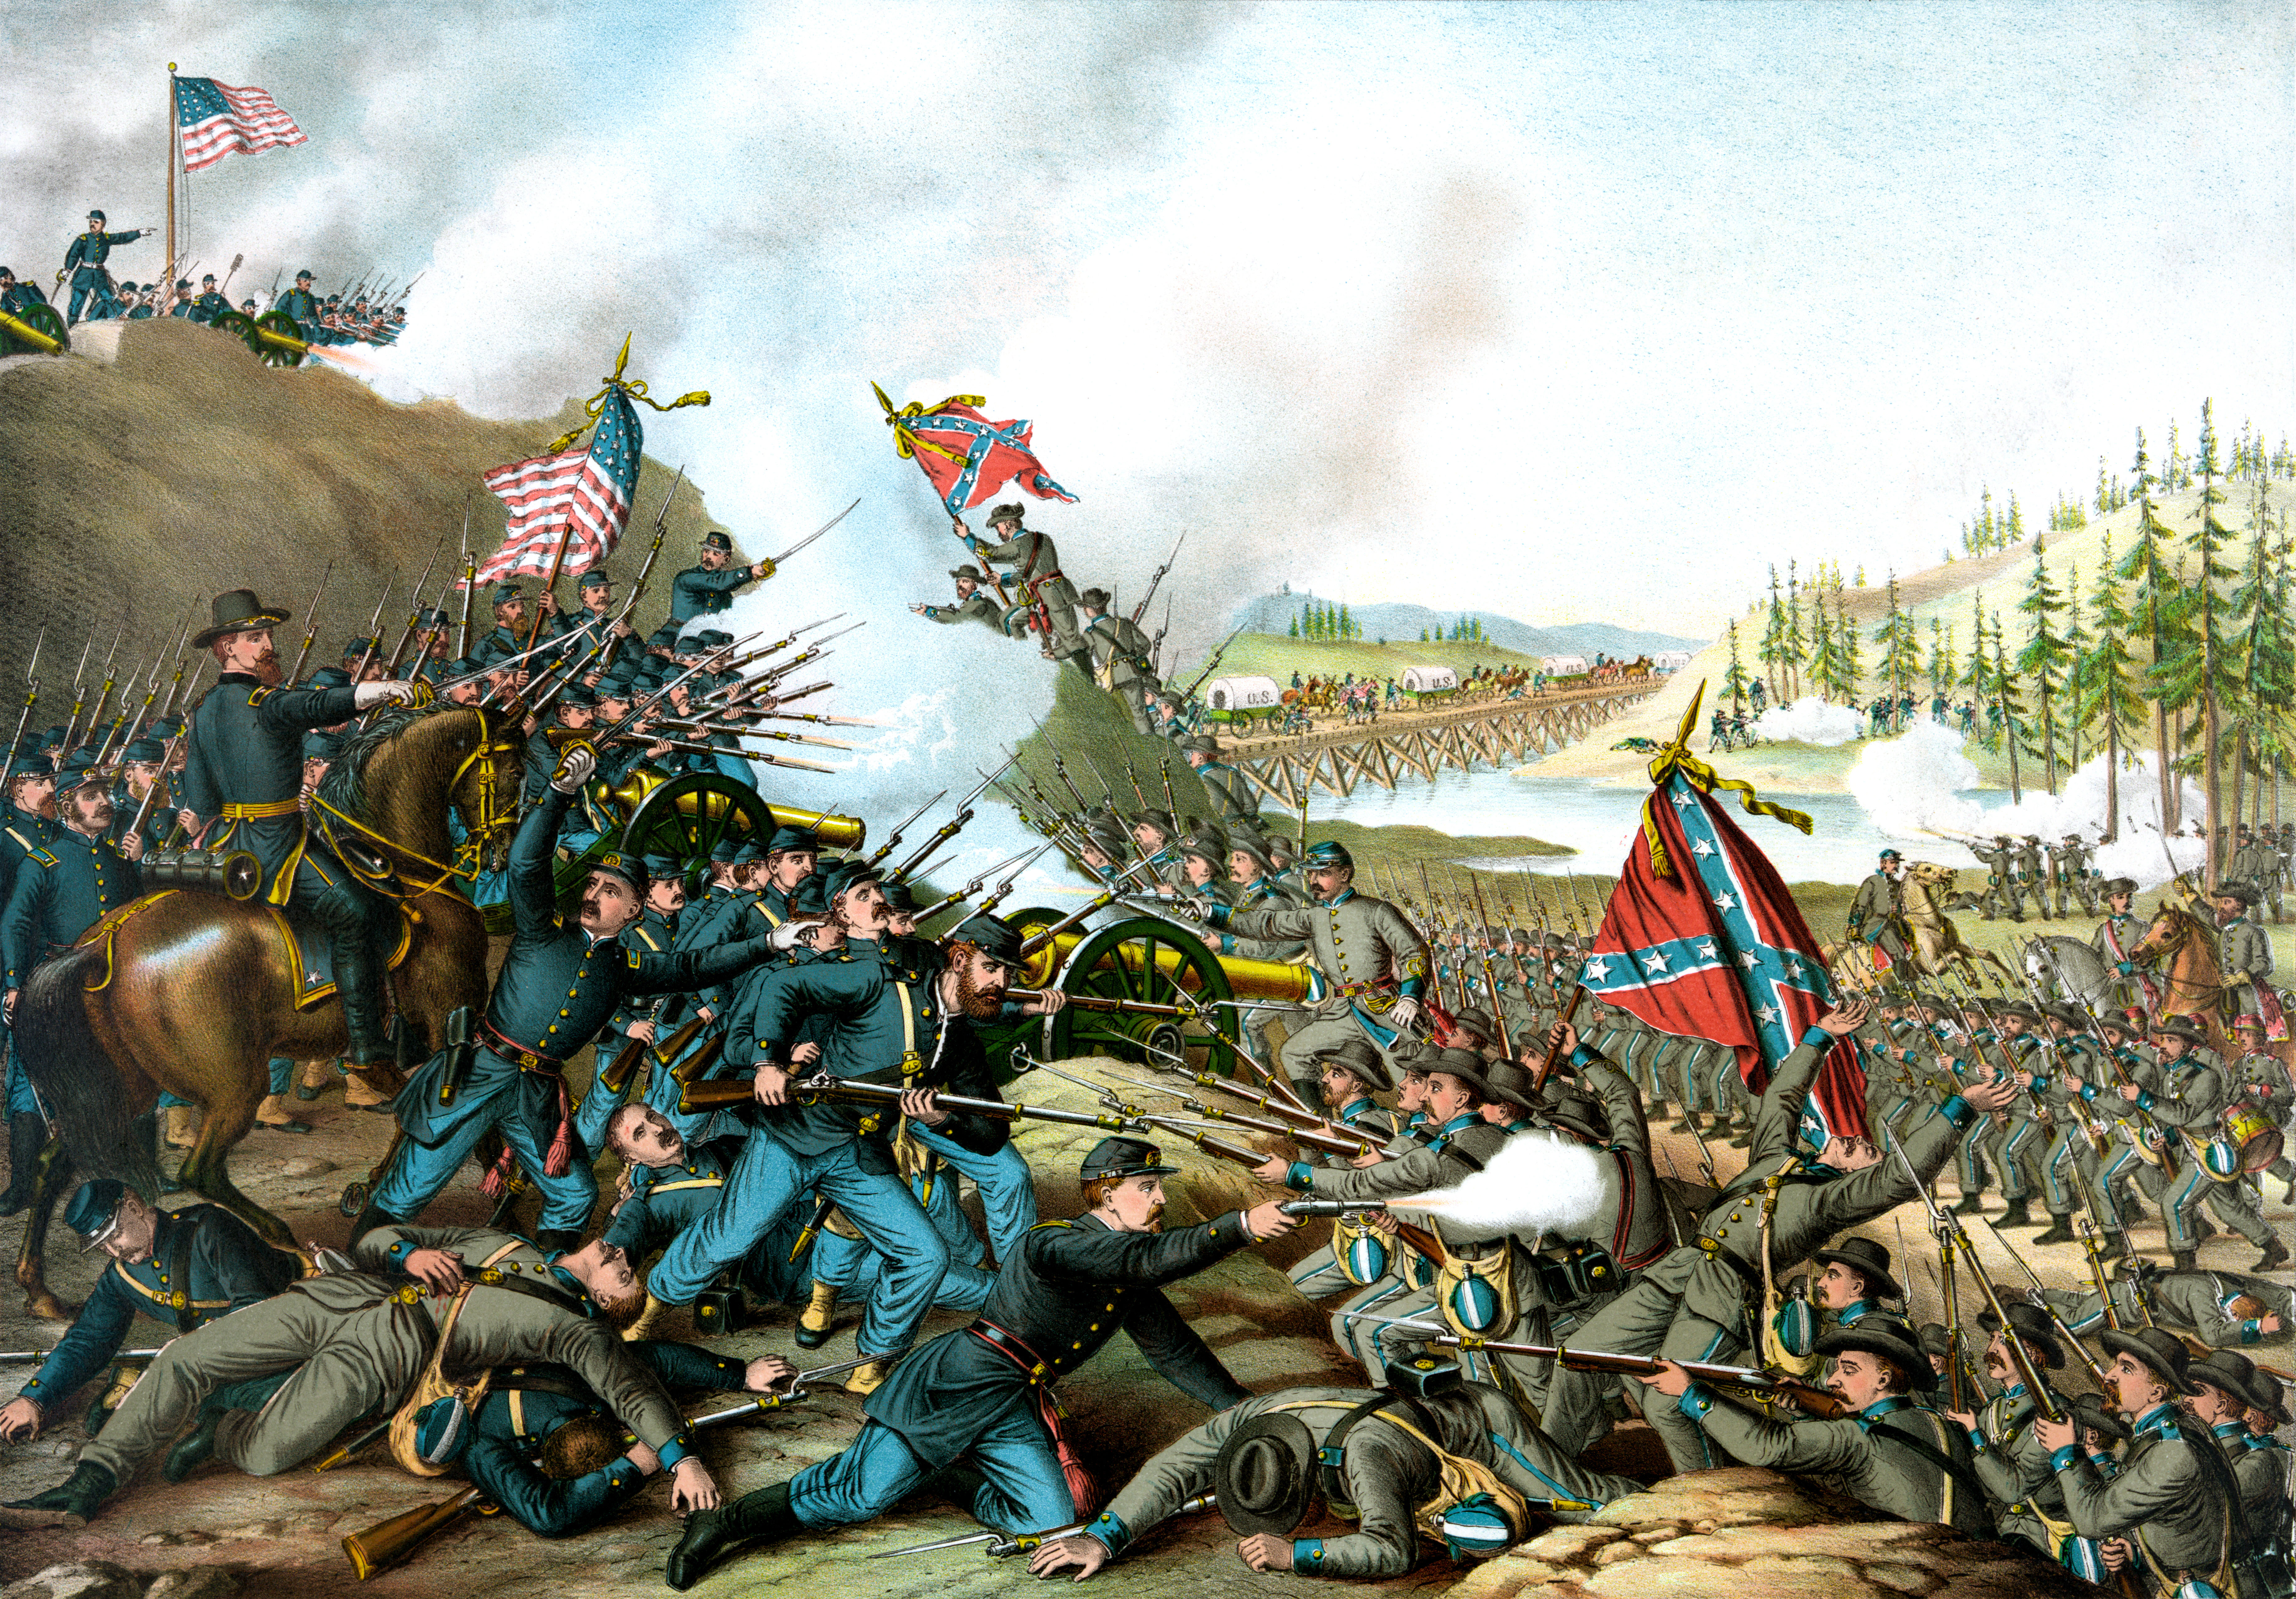 the history and importance of the battle of gettysburg during the civil war in america